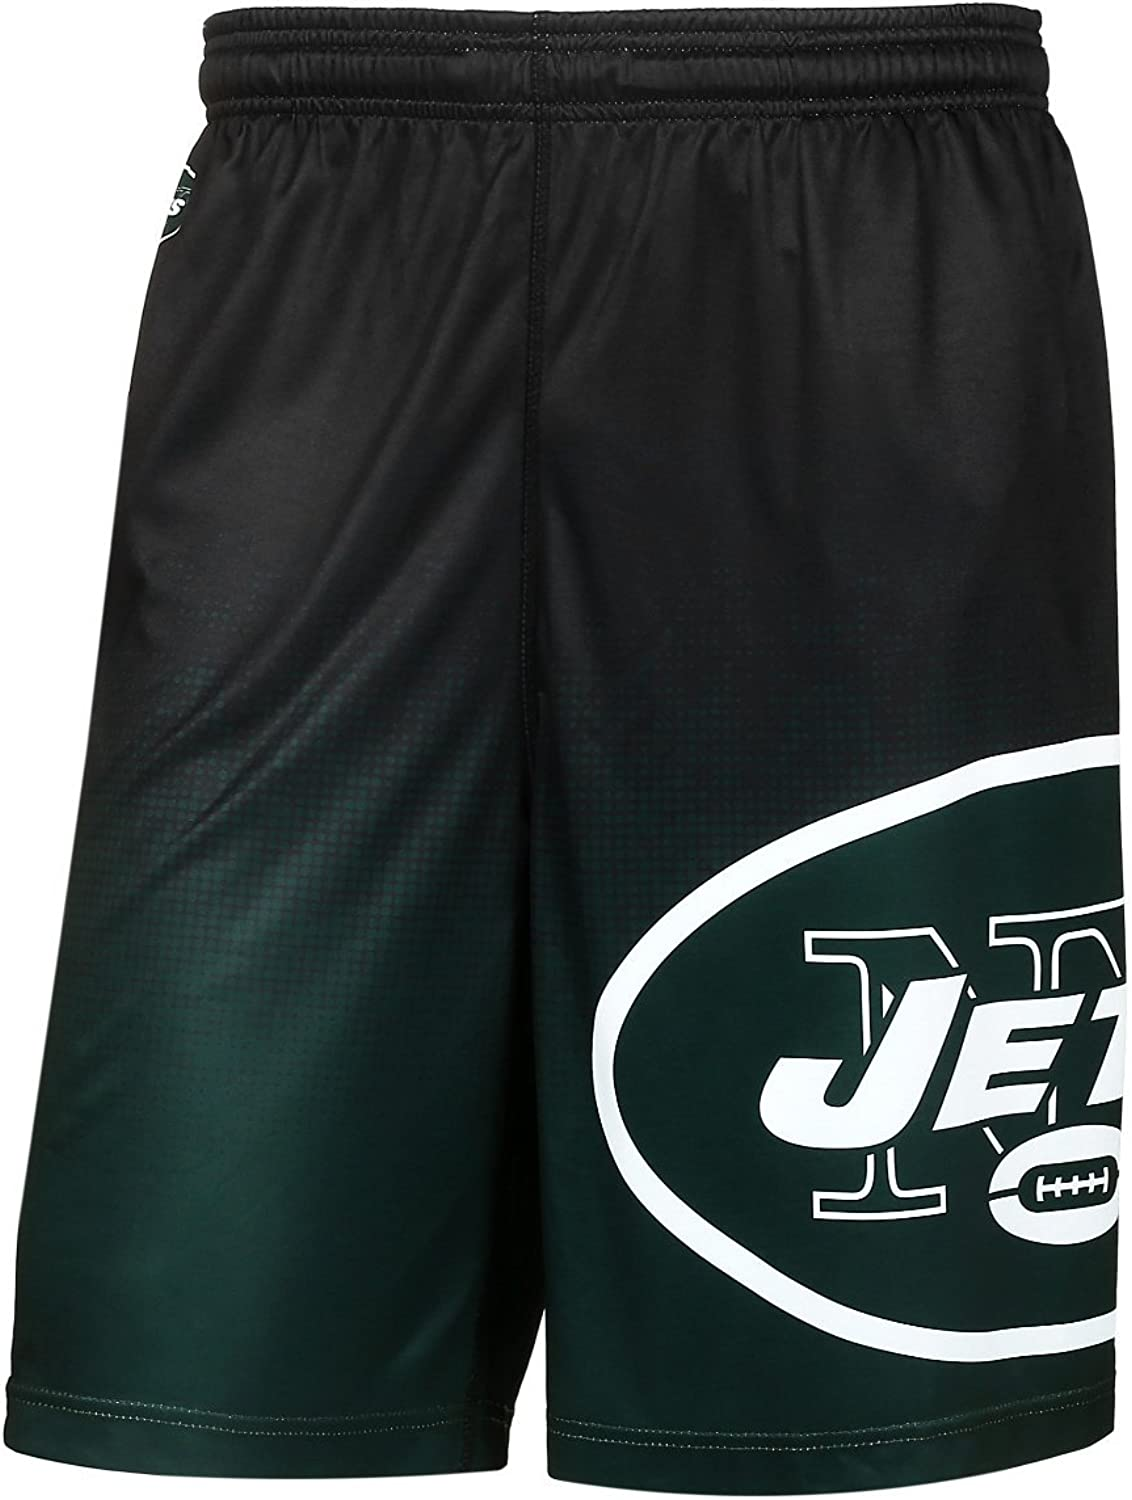 NFL New York Jets Men's 2016 Gradient Polyester Shorts, Medium, Green